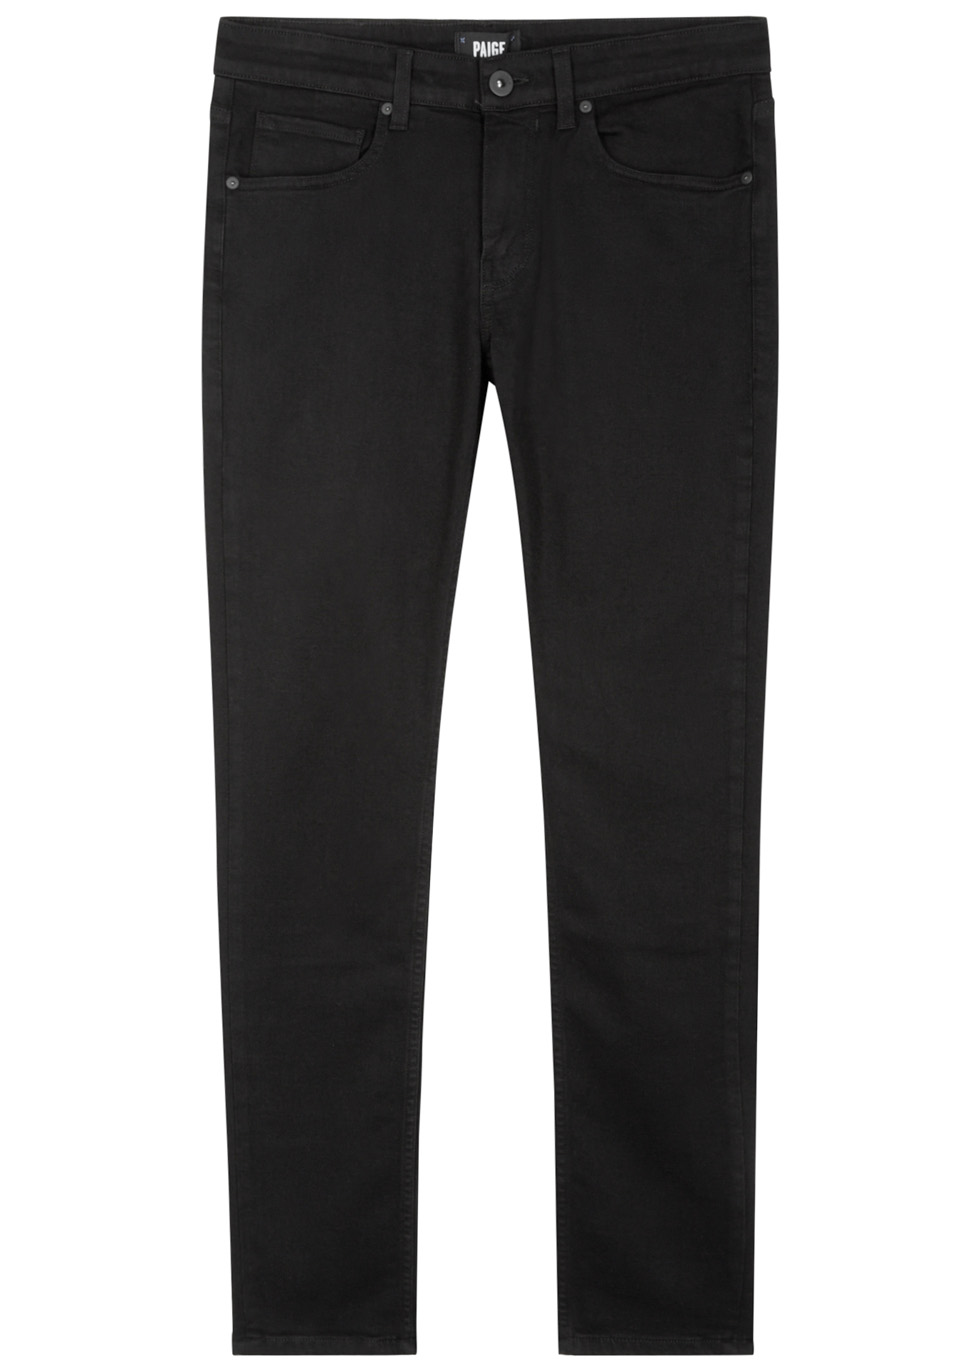 Croft black skinny jeans